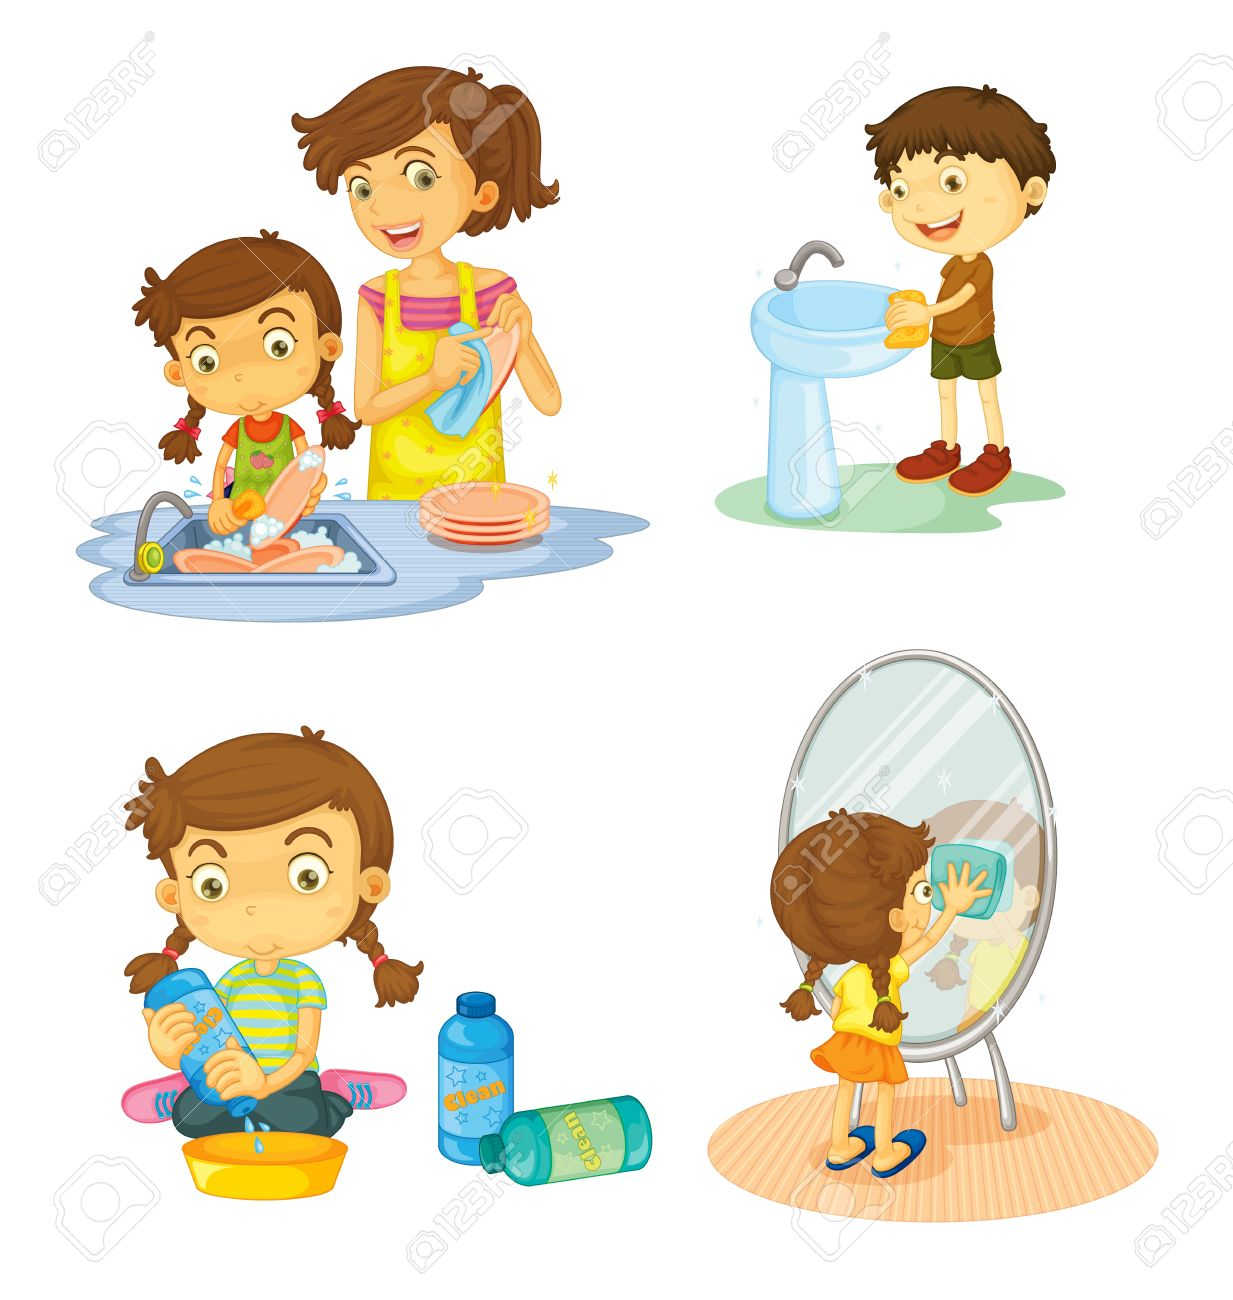 Washing dishes by hand clipart clip art transparent stock 6,385 Clean Dishes Stock Vector Illustration And Royalty Free ... clip art transparent stock